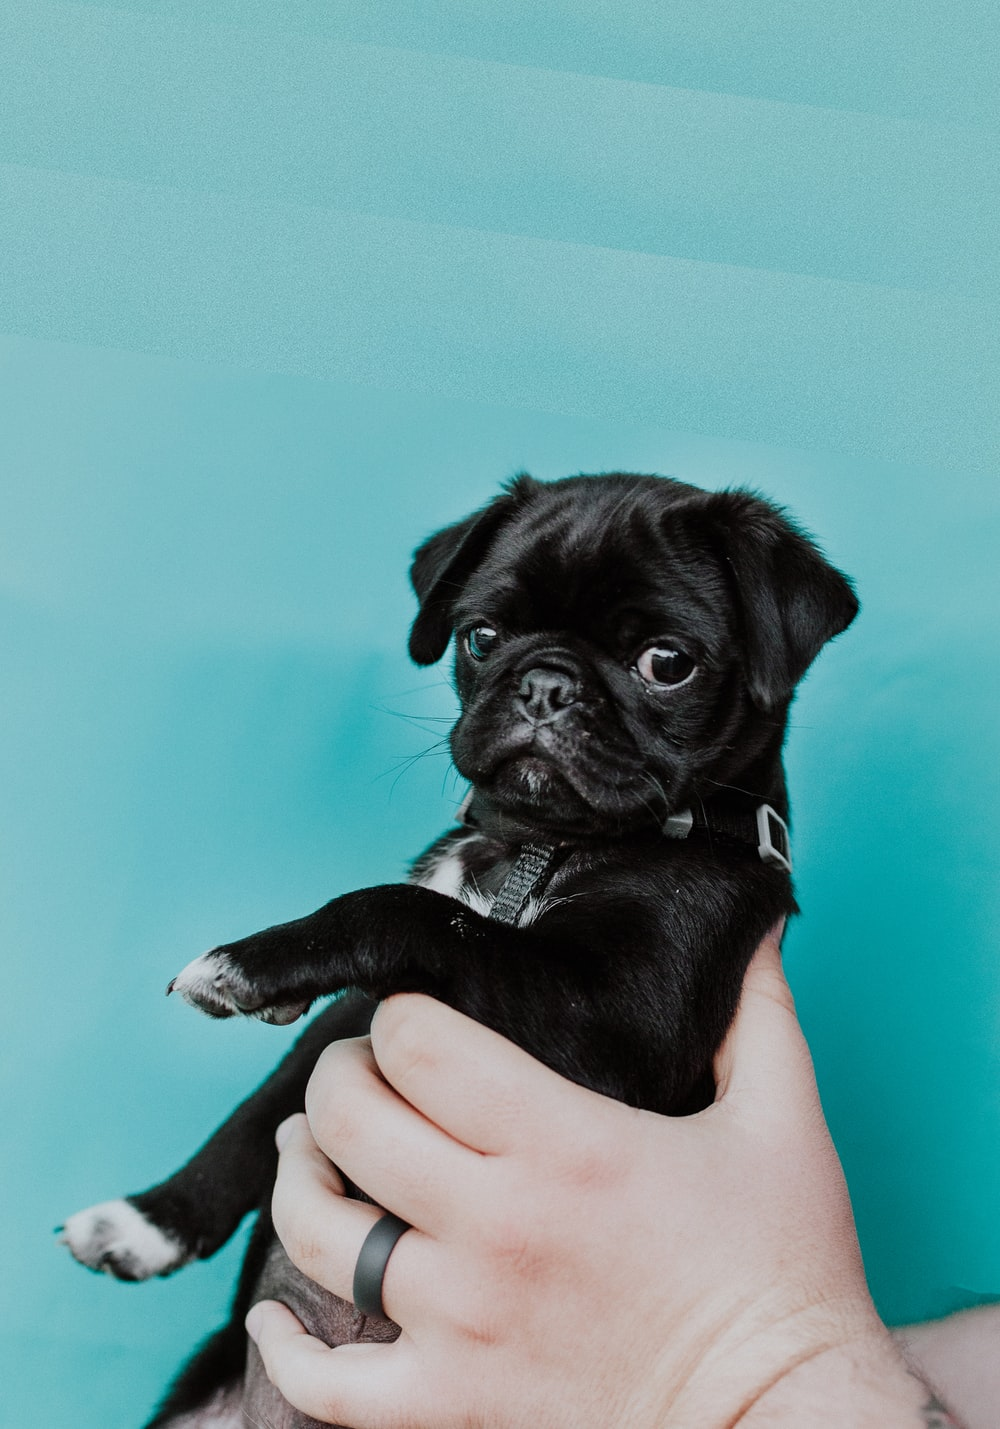 black pug puppy on persons hand